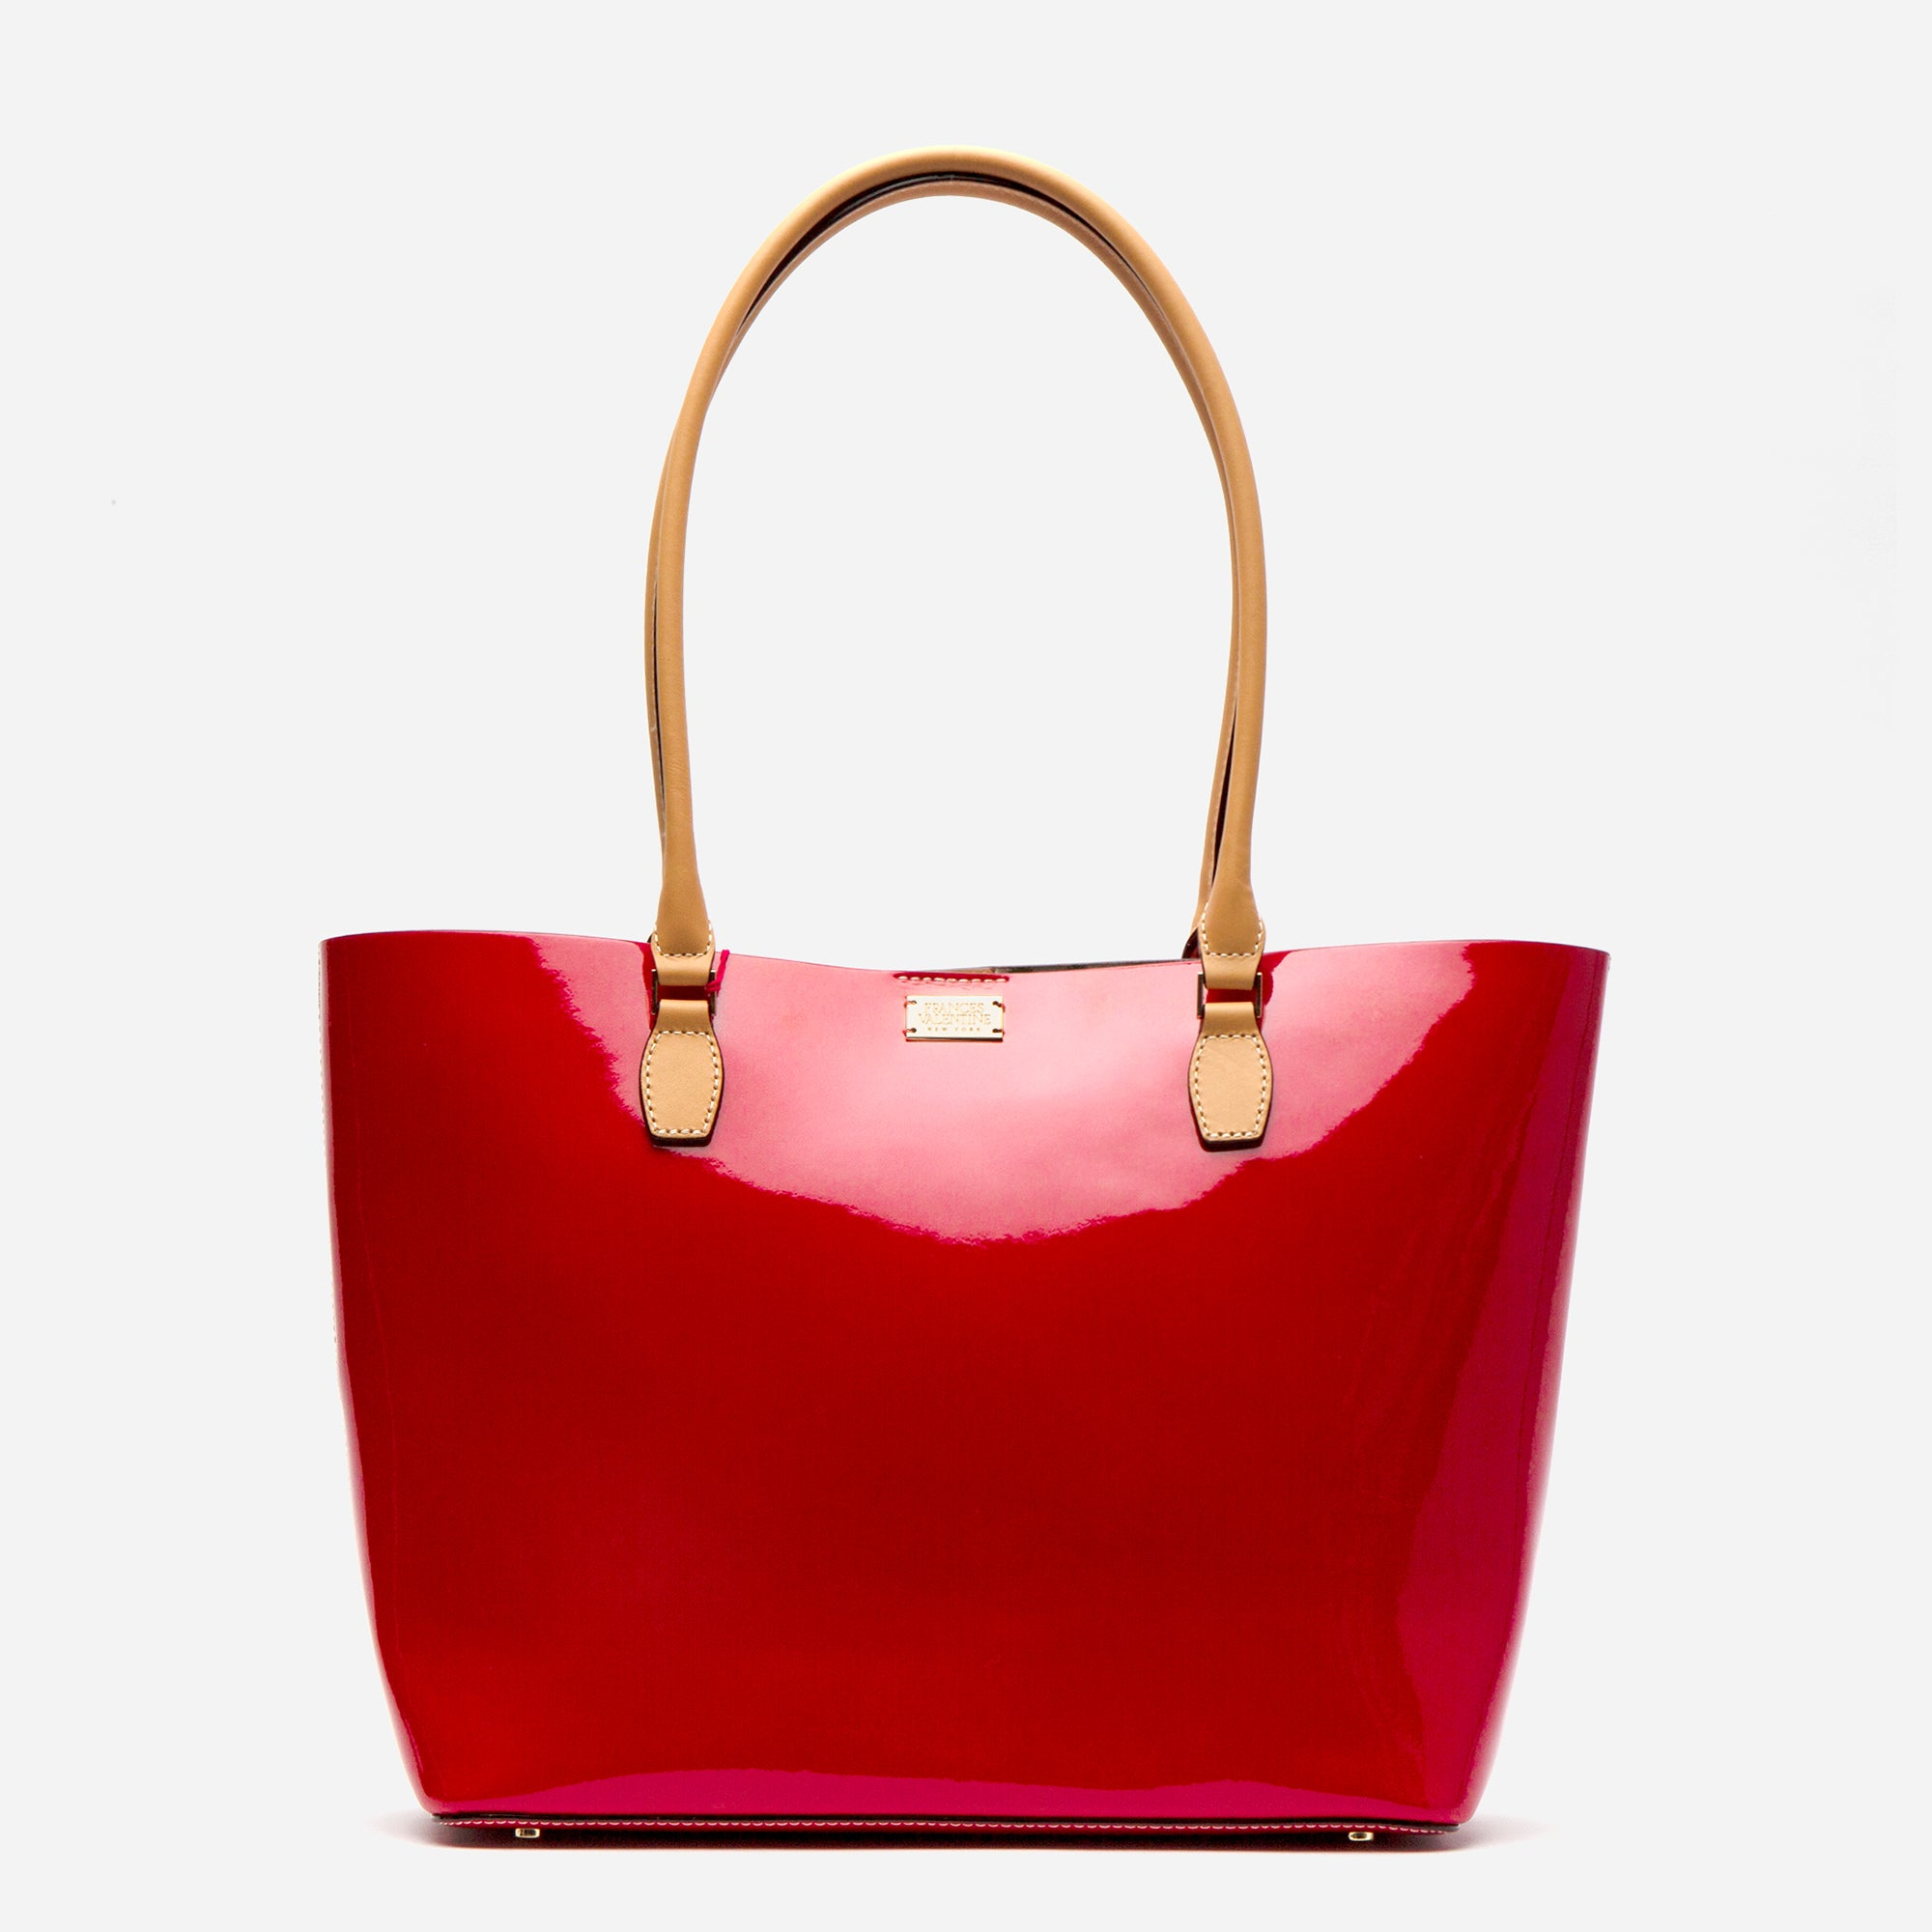 Medium Trixie Tote Soft Patent Red